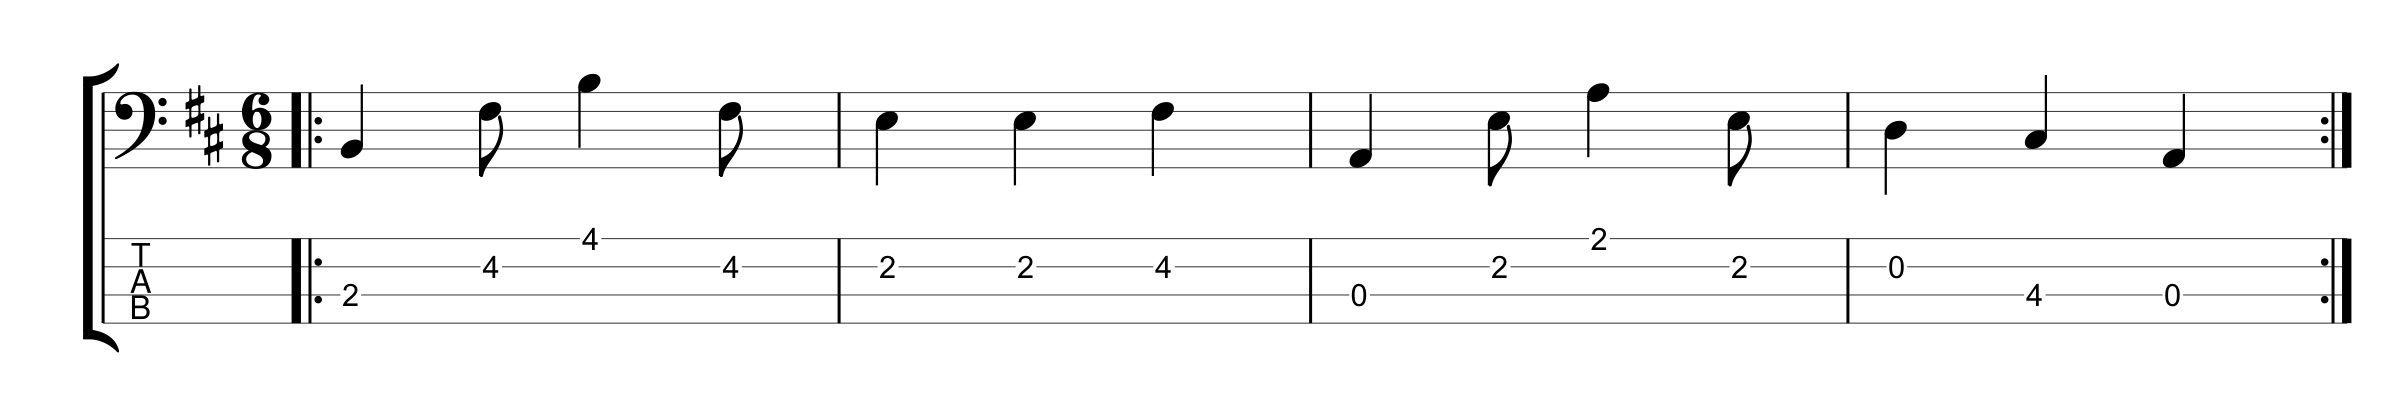 6/8 Time Signature - Example 1